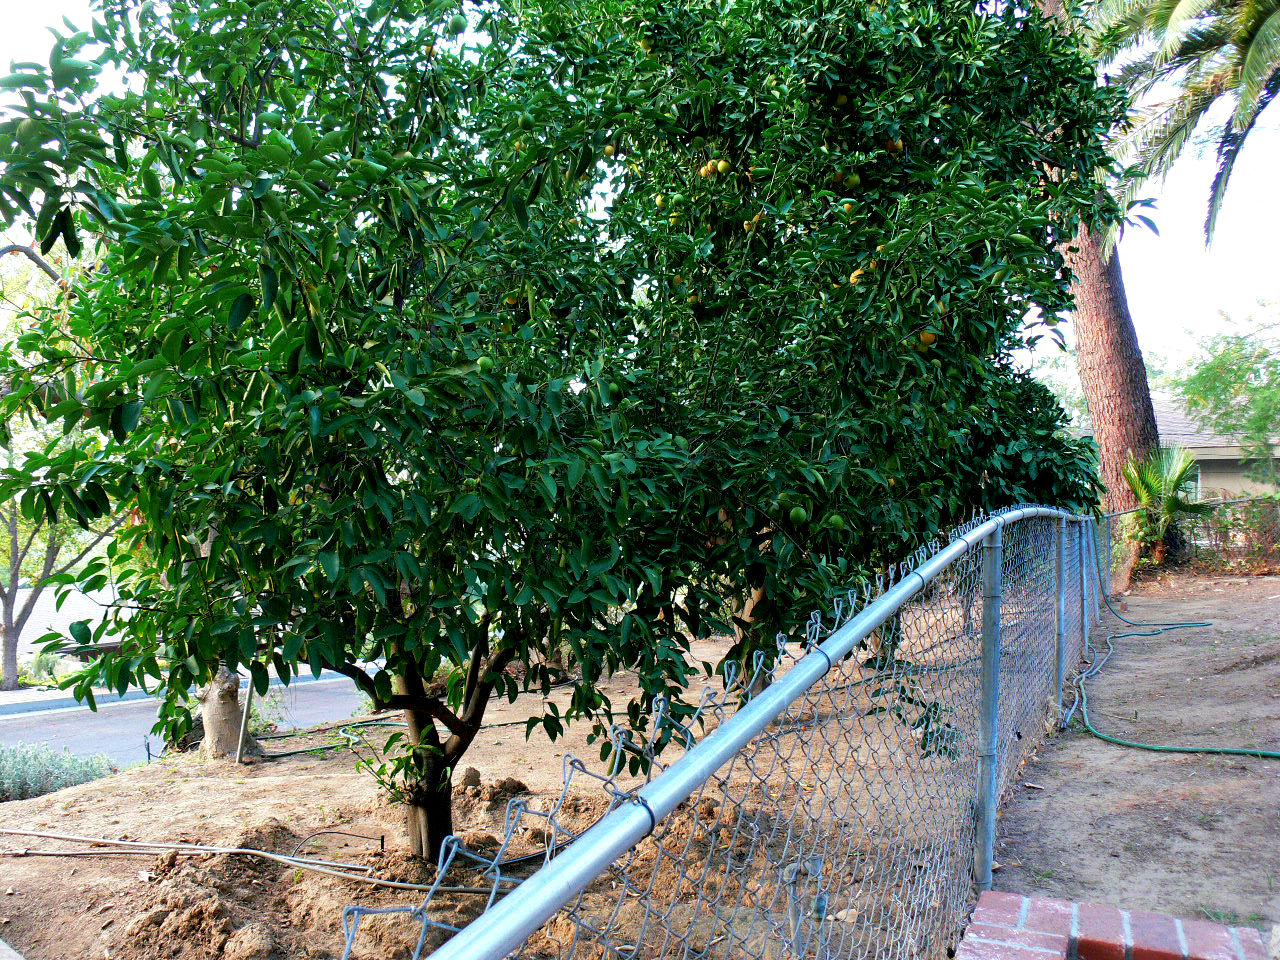 Yummy citrus trees on outside of chain link, but definitely part of this property.